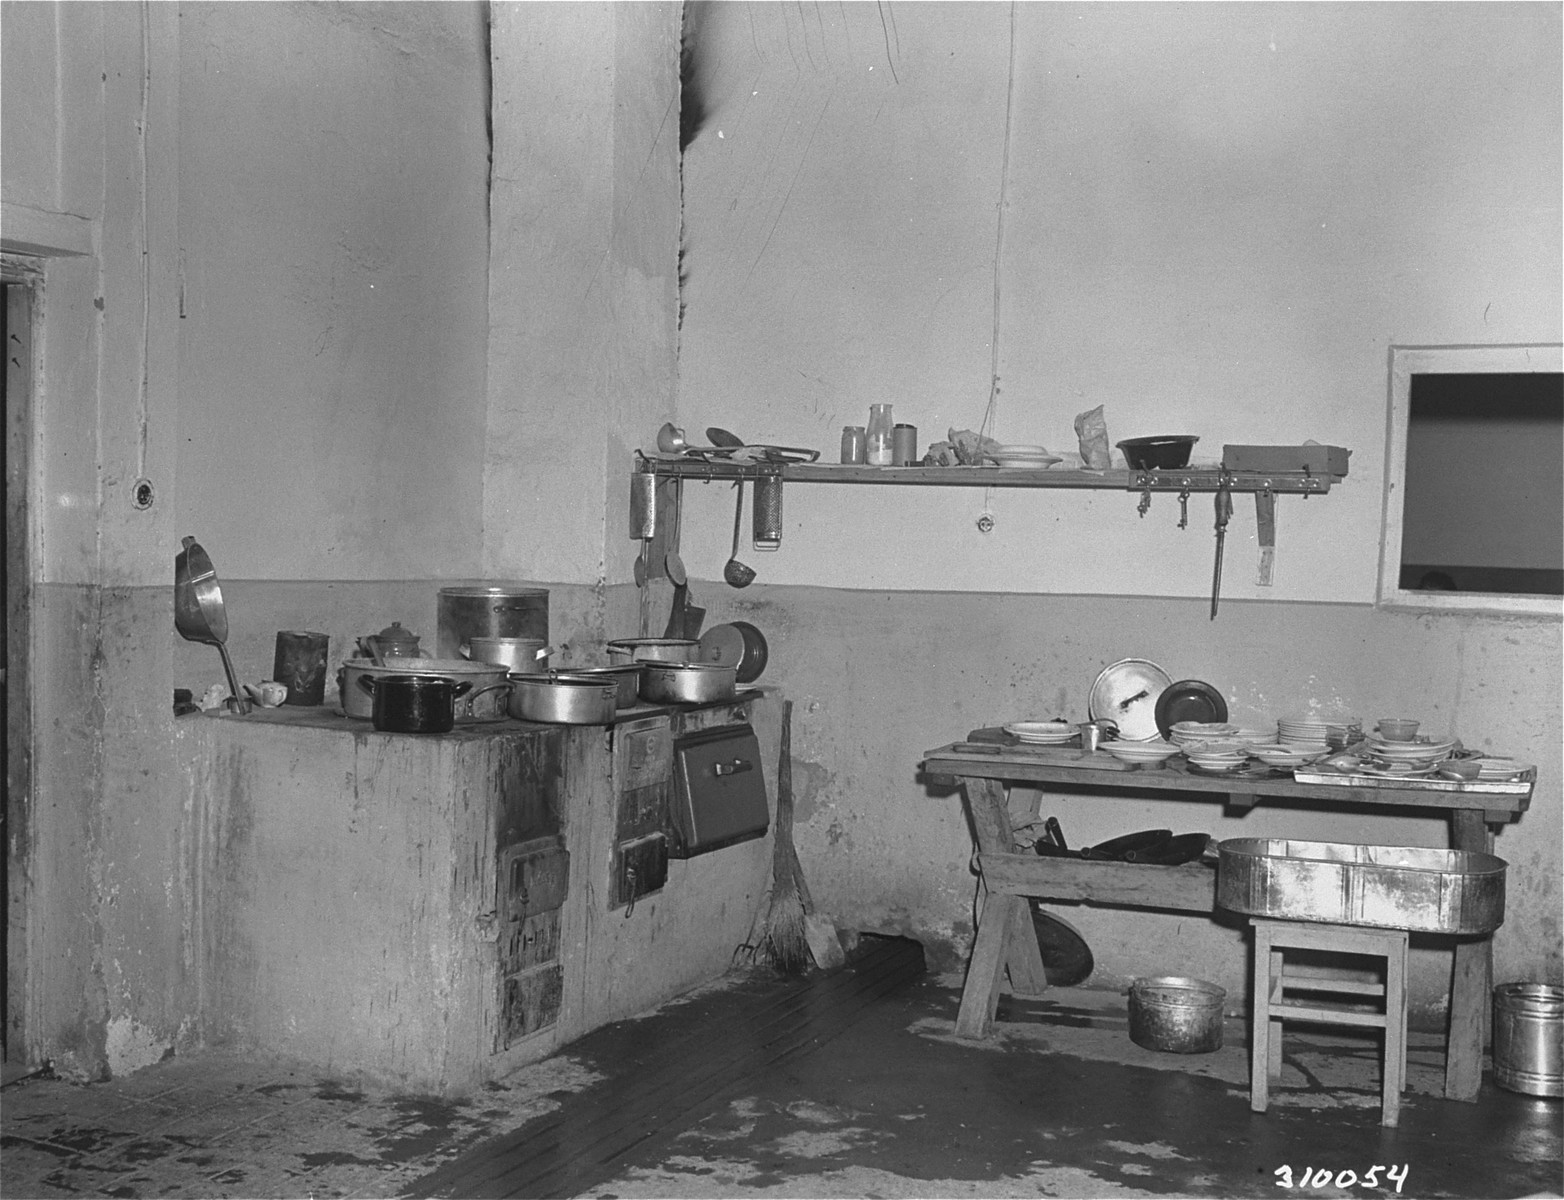 A kitchen where meals were prepared for unmarried men at the Jewish displaced persons camp in Wetzlar.